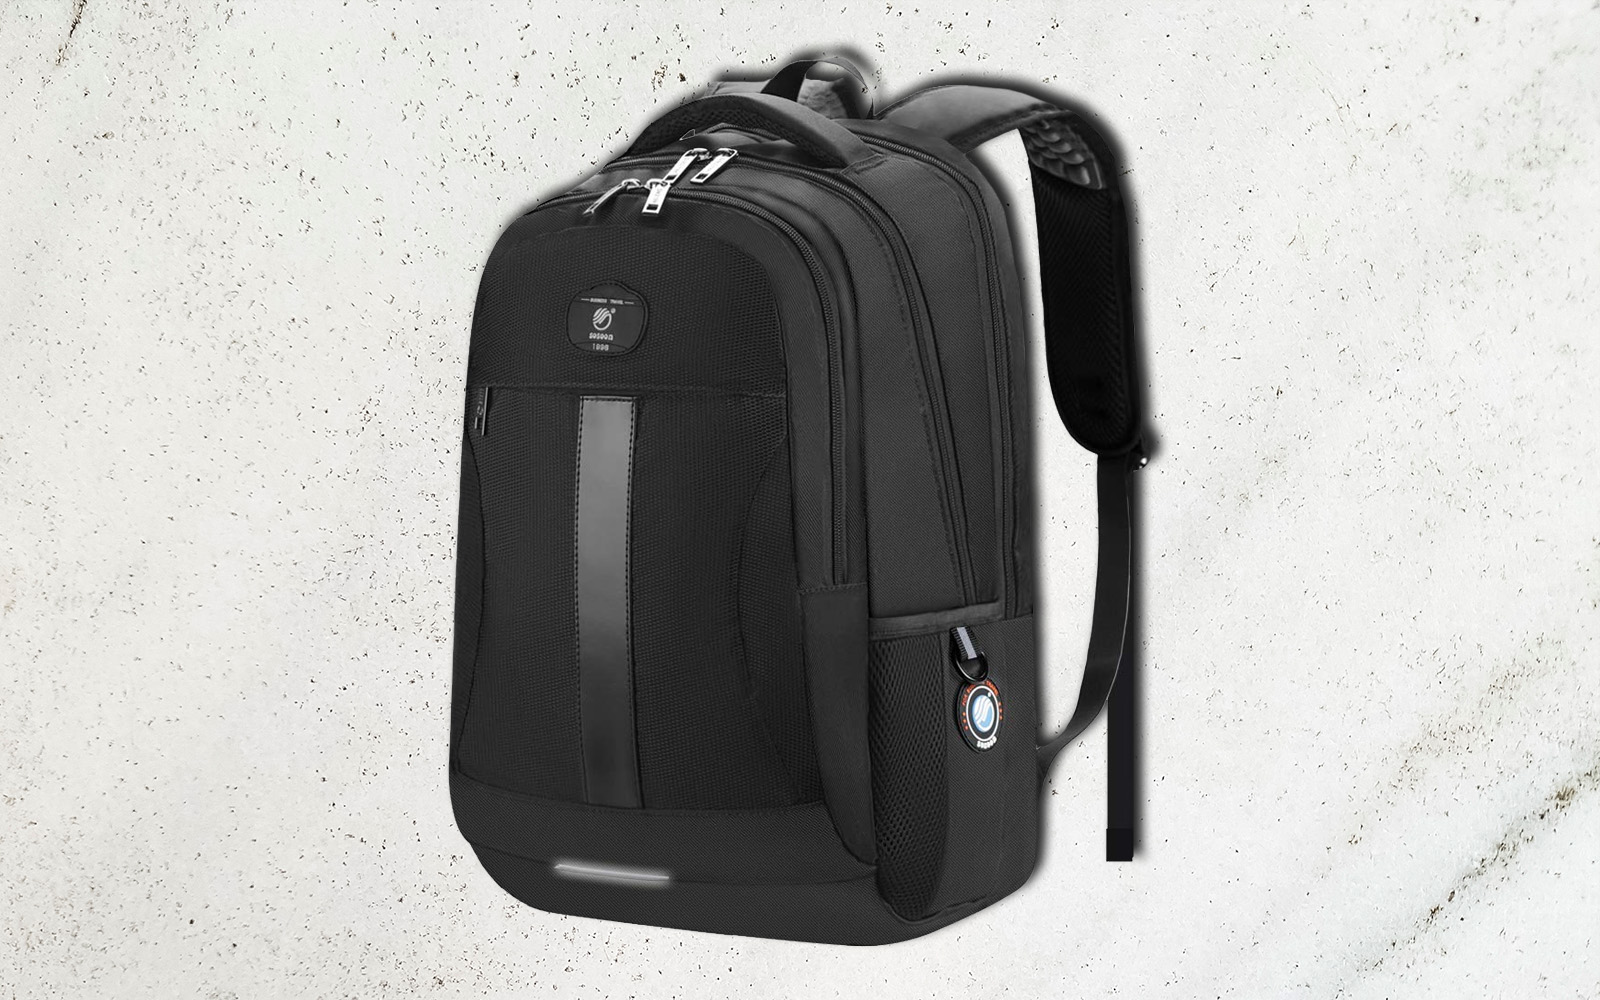 Amazon Prime Day 2019: Sosoon Laptop Backpack Deal